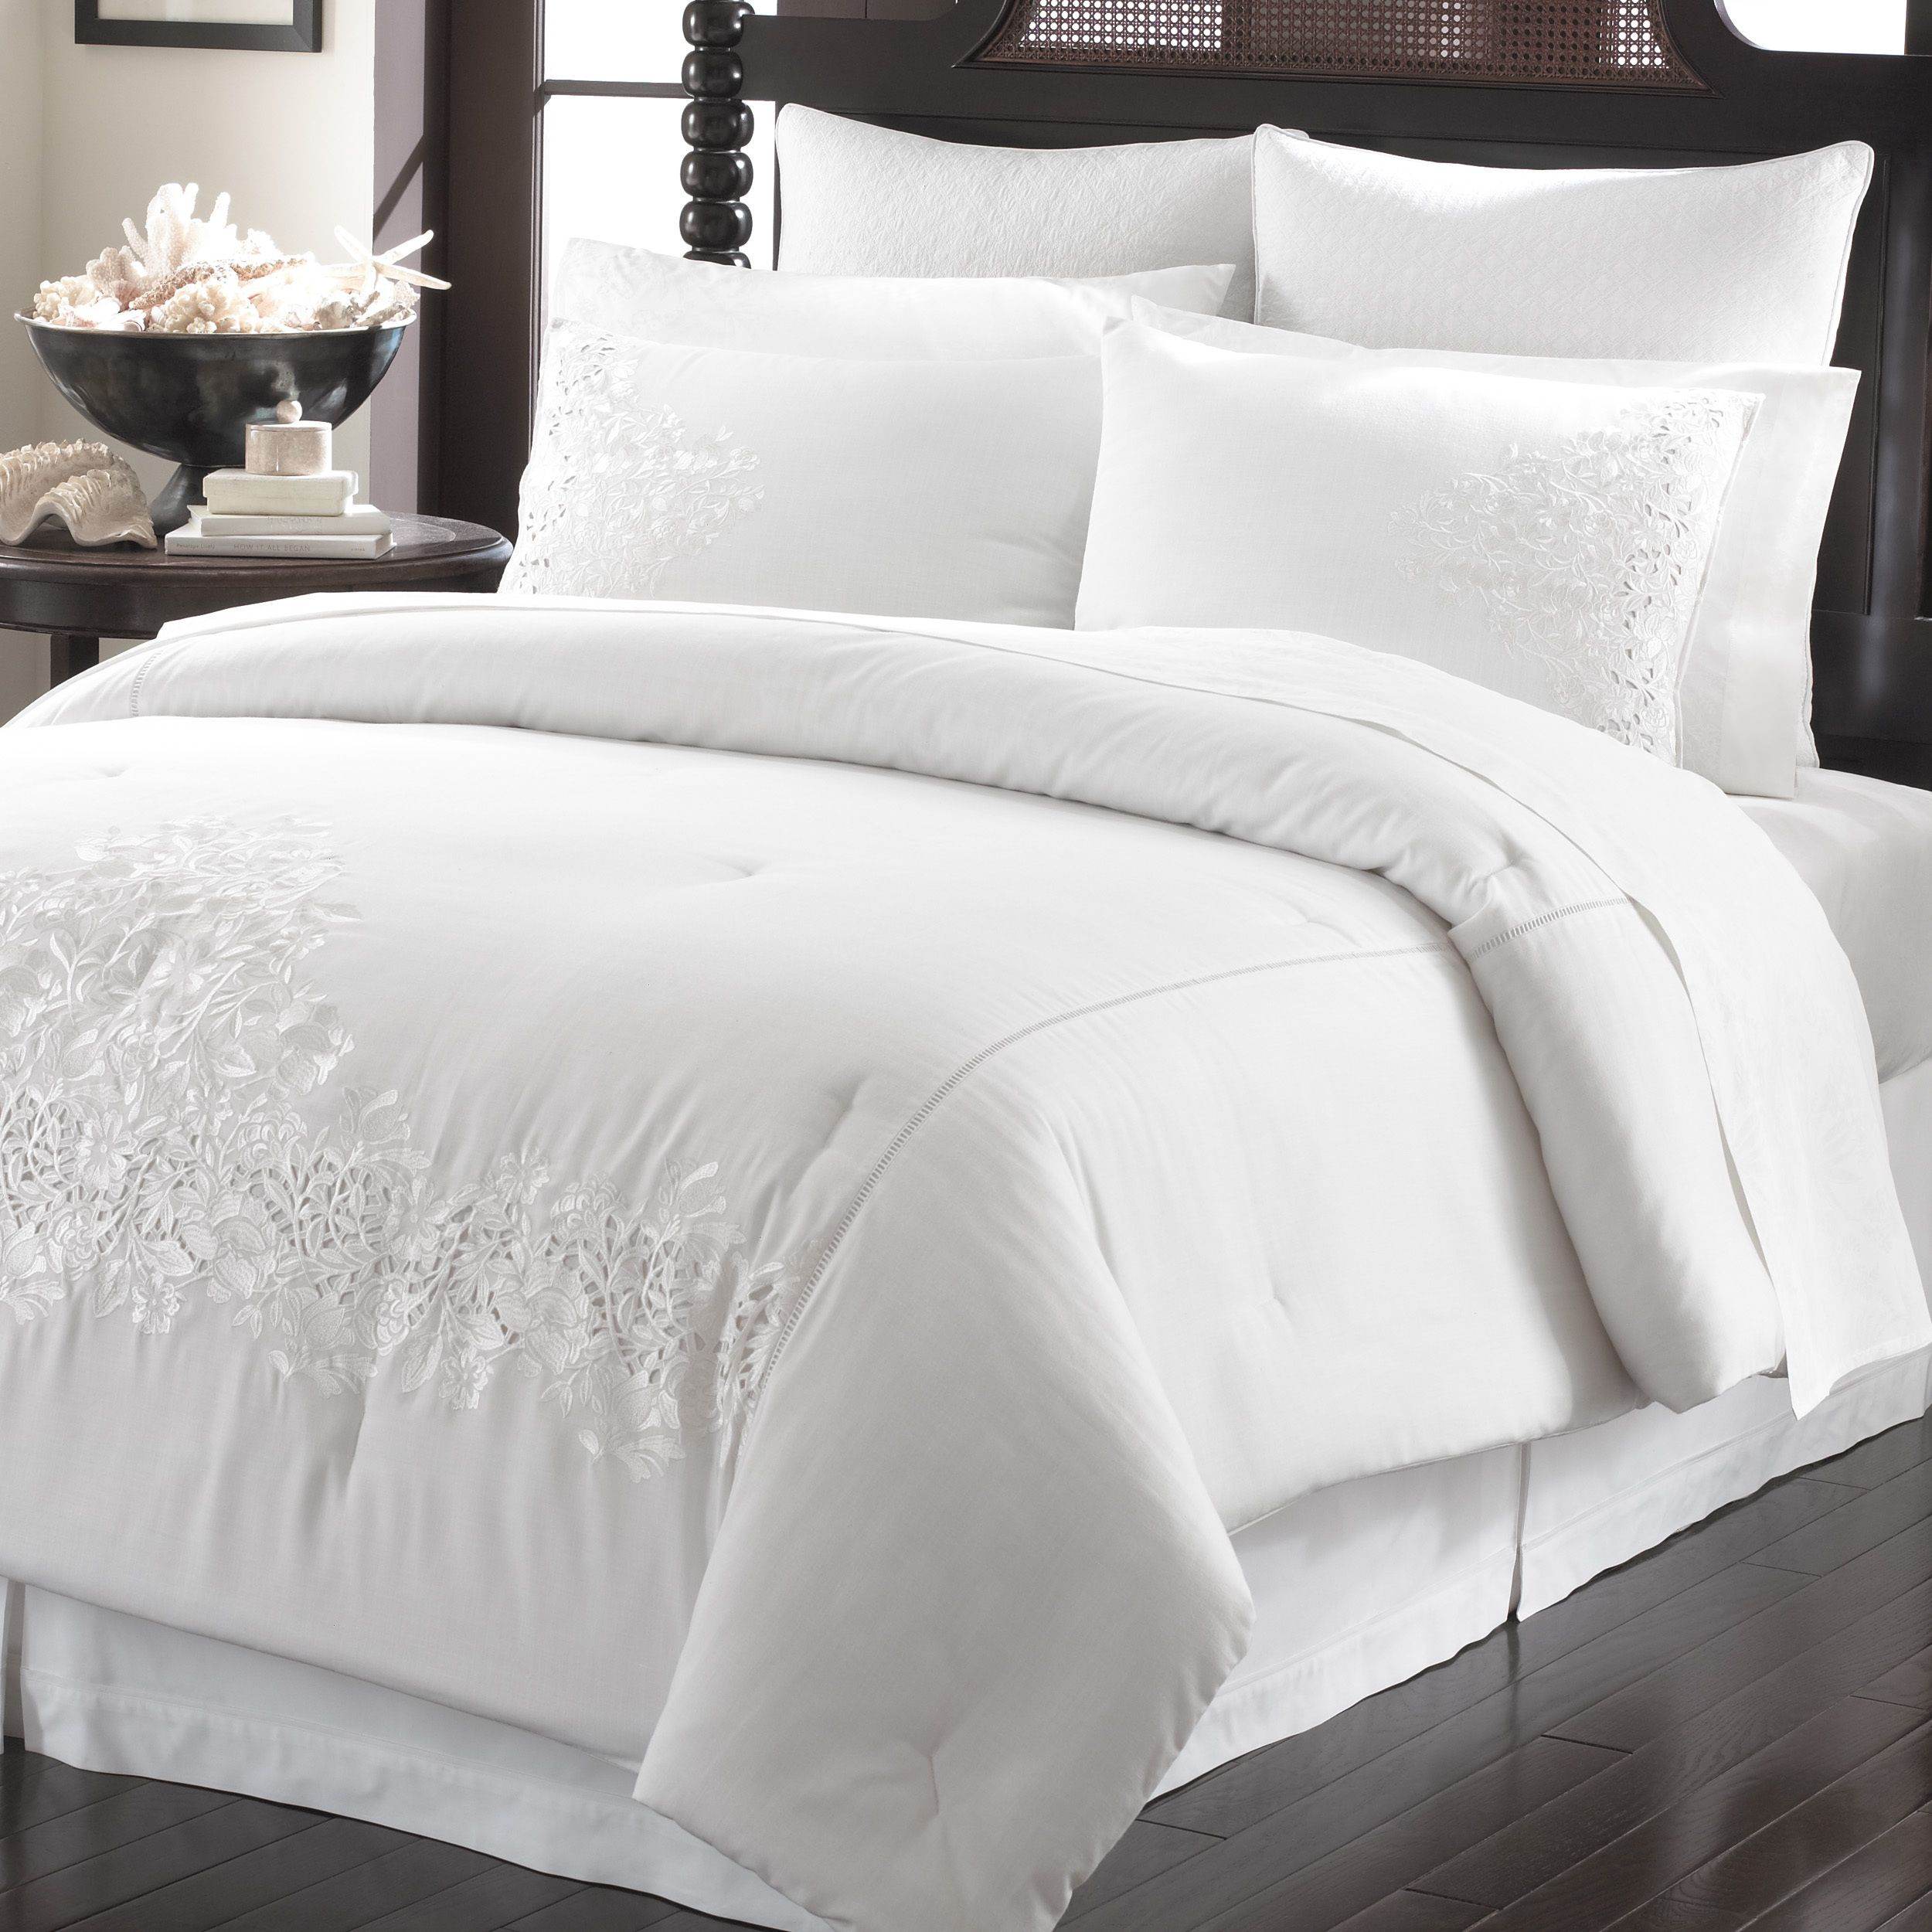 orders at on fashion shipping over pin online free bed overstock com your bedding